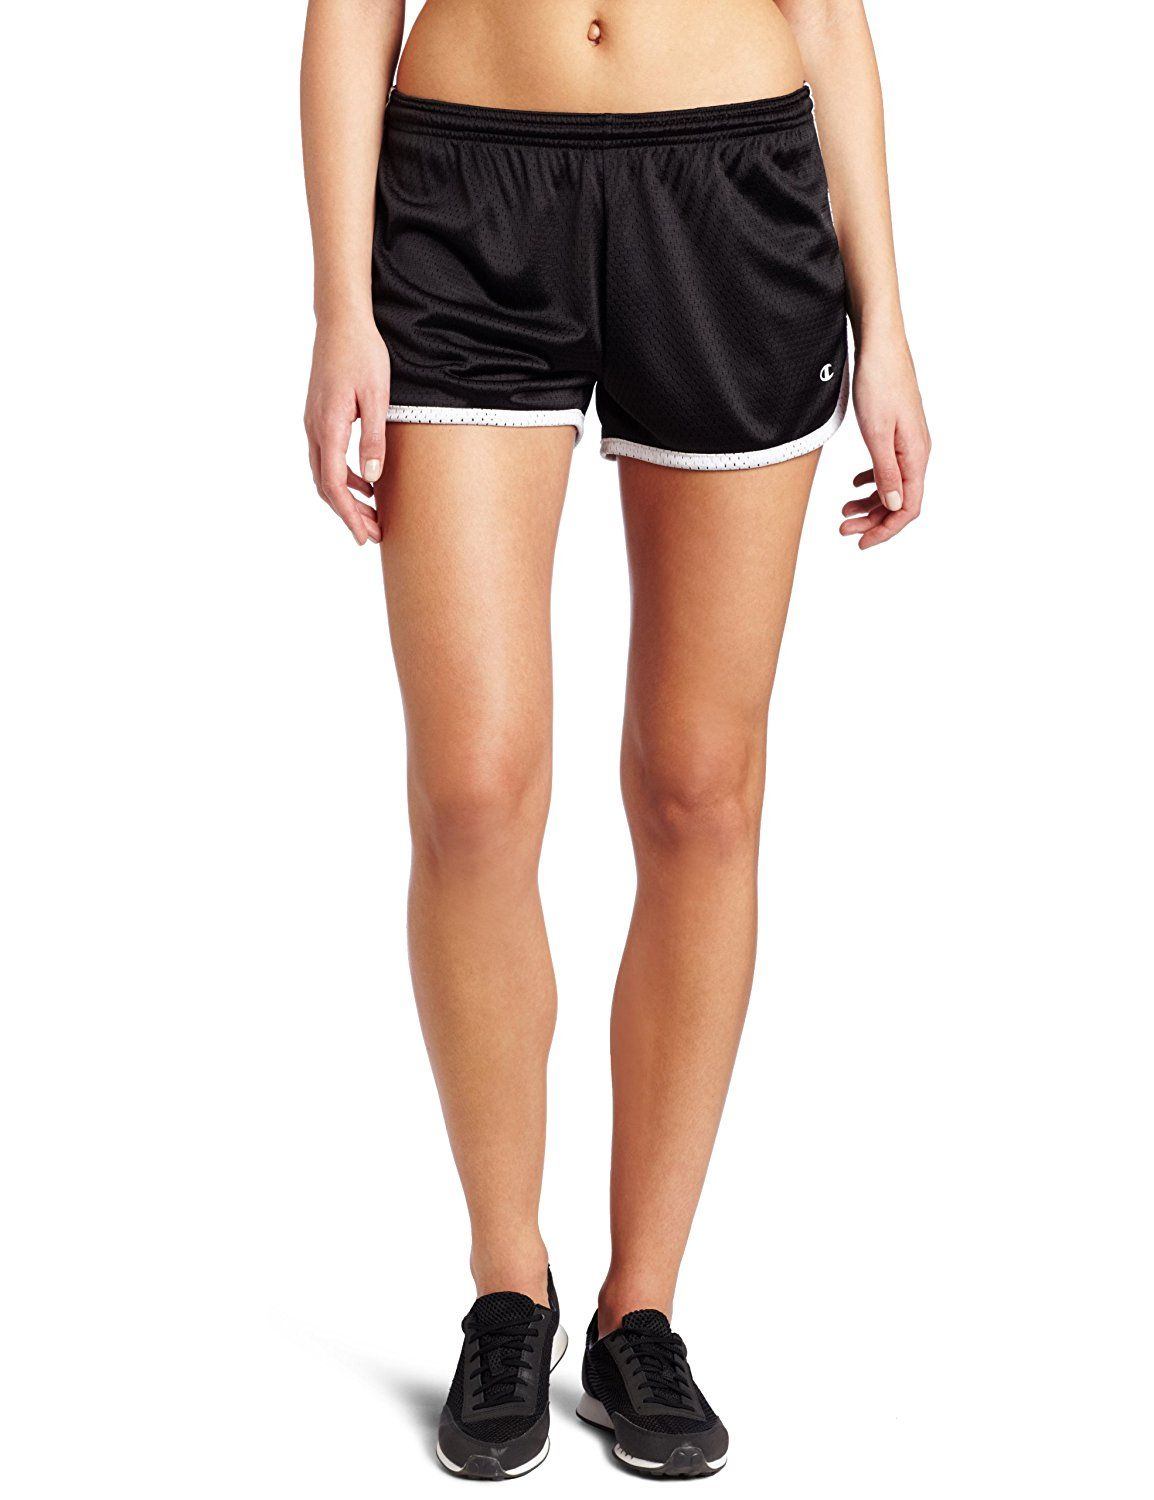 d0e1543bf39b Champion Women s Mesh Hot Short at Amazon Women s Clothing store  Athletic  Shorts